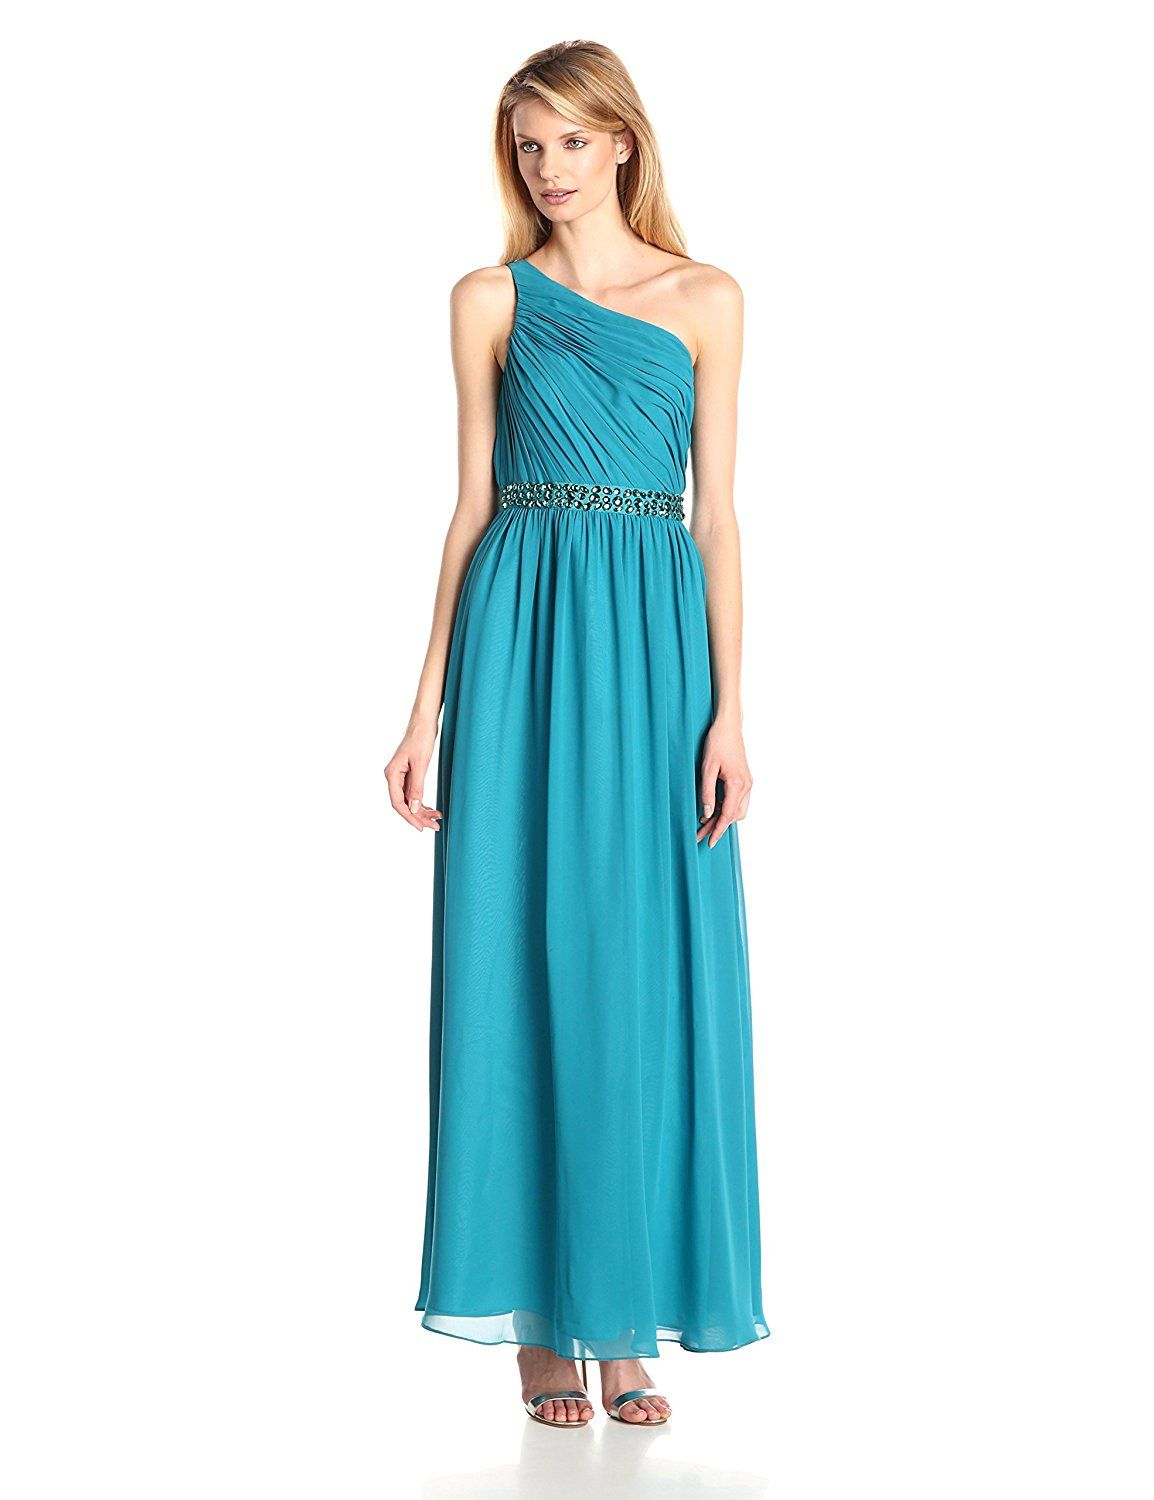 Hailey by Adrianna Papell Women\'s Long One Shoulder Gown ** Don\'t ...